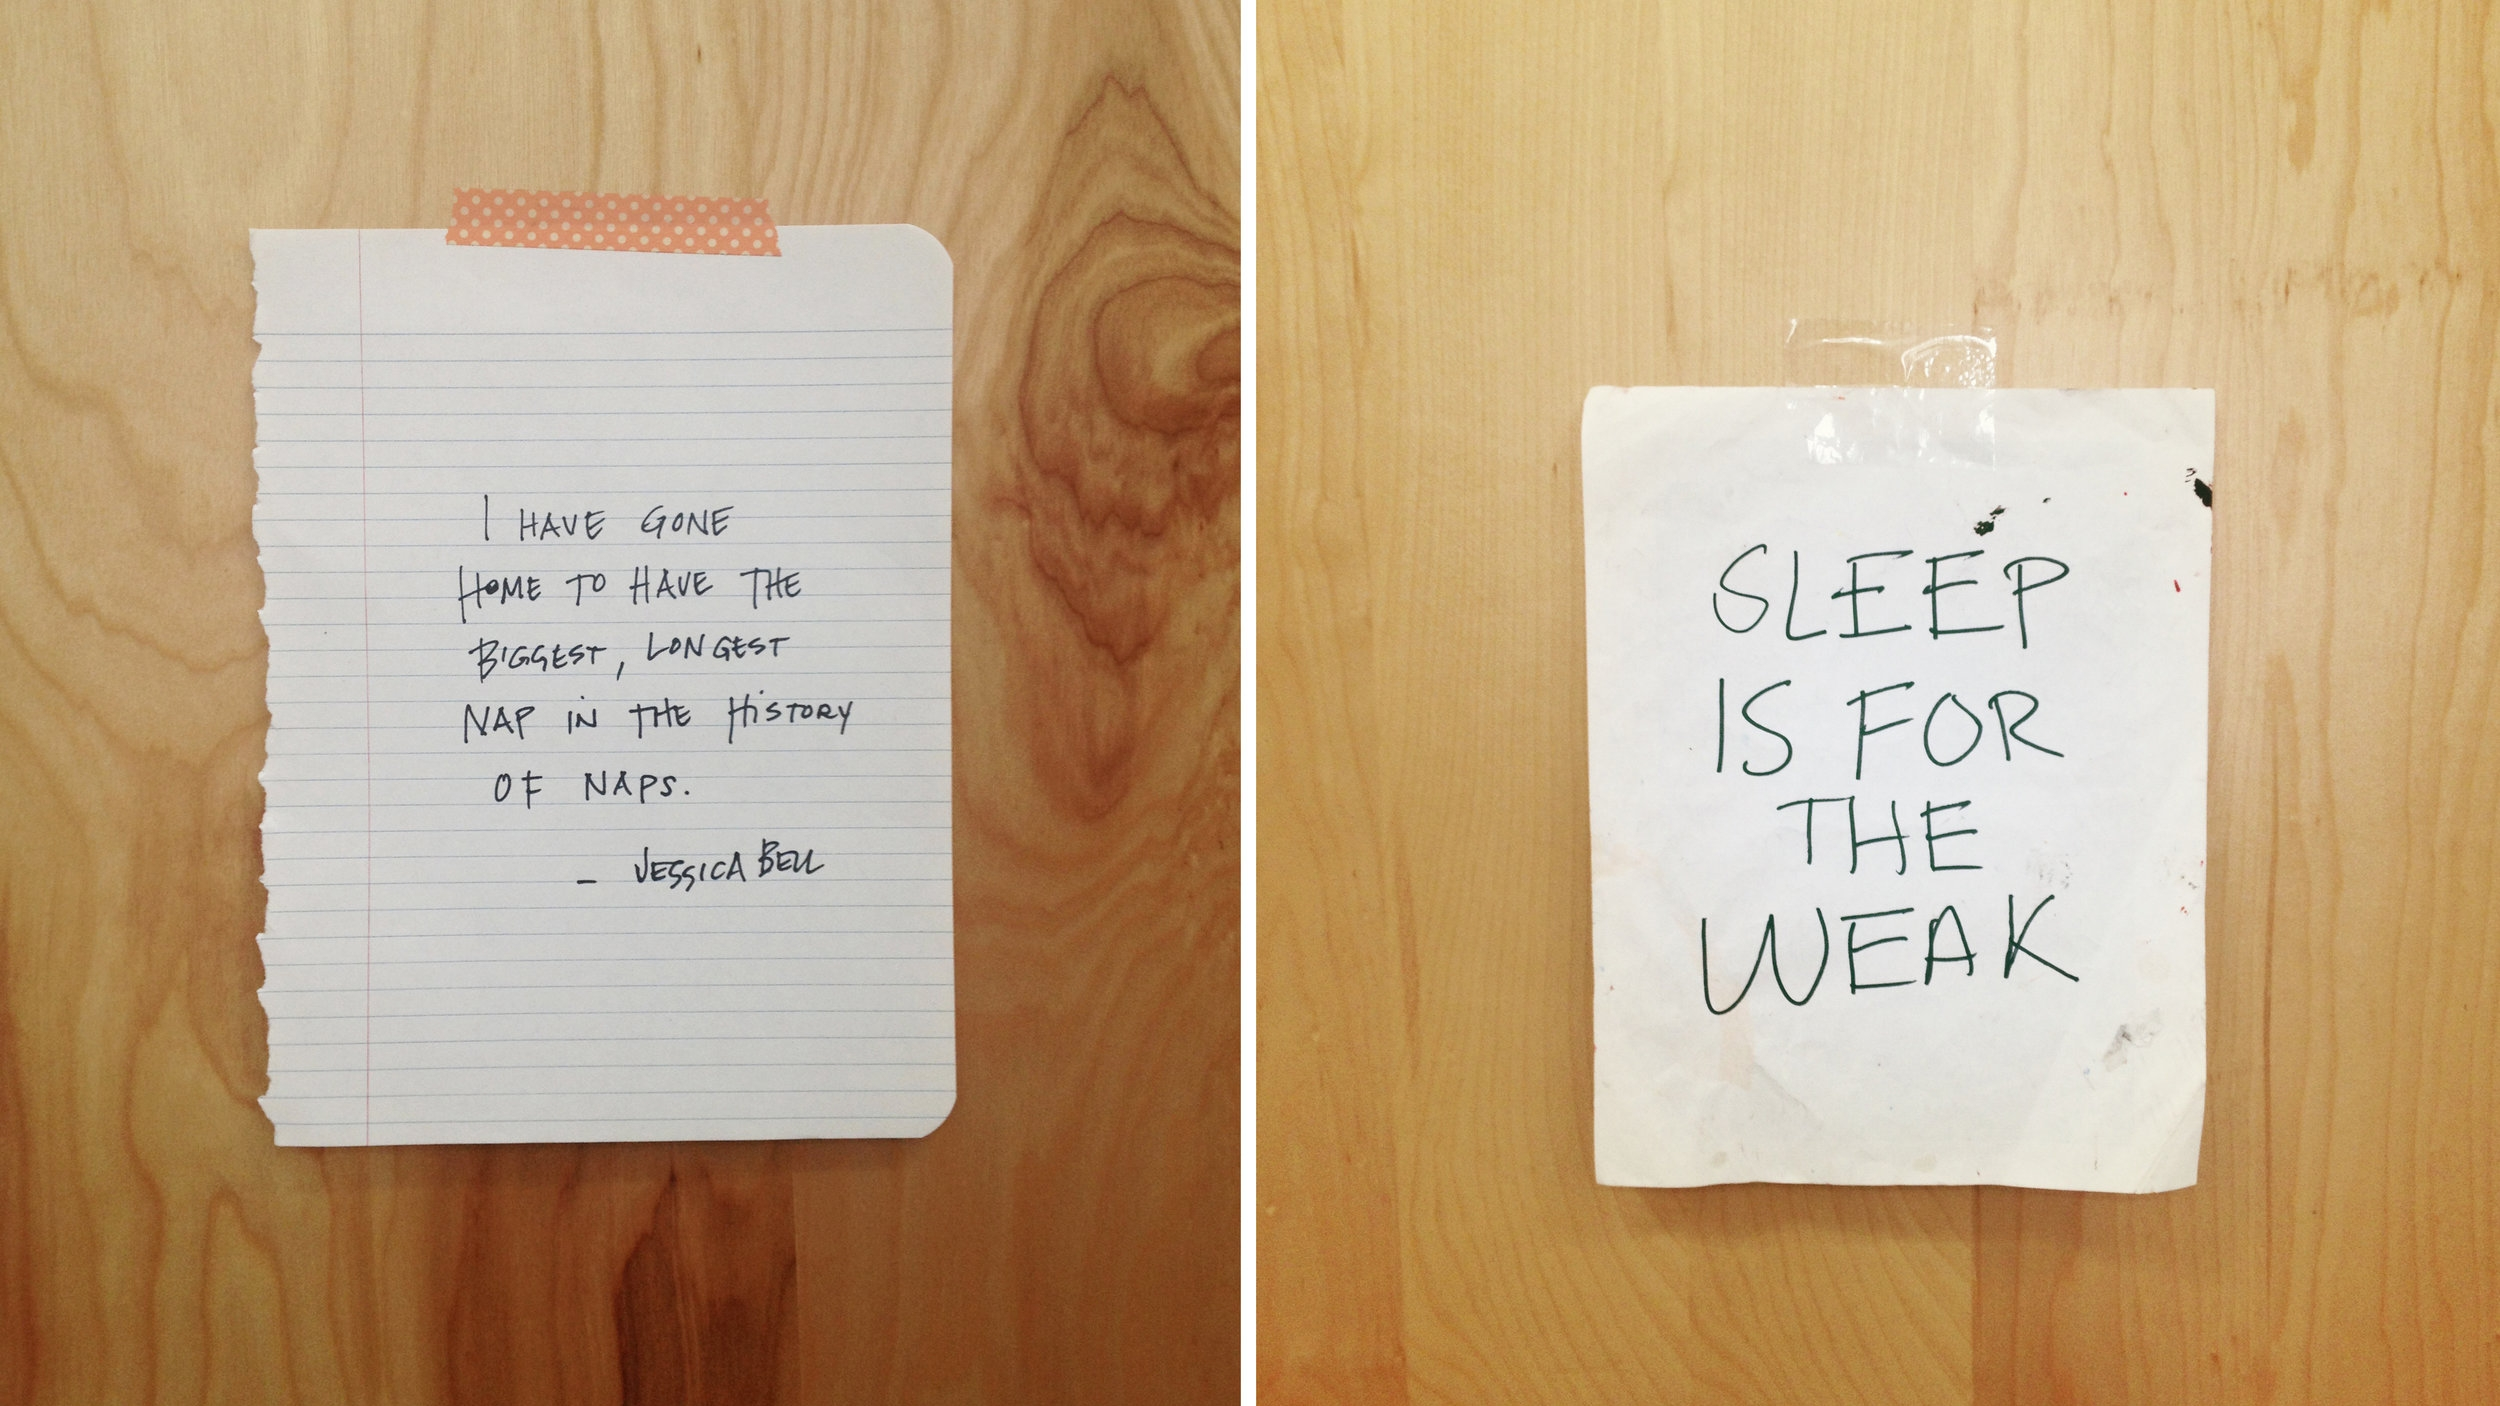 Two differing opinions on the importance of sleep. The occupant of the studio on the right NEARLY DIED, so let's take more naps, okay?